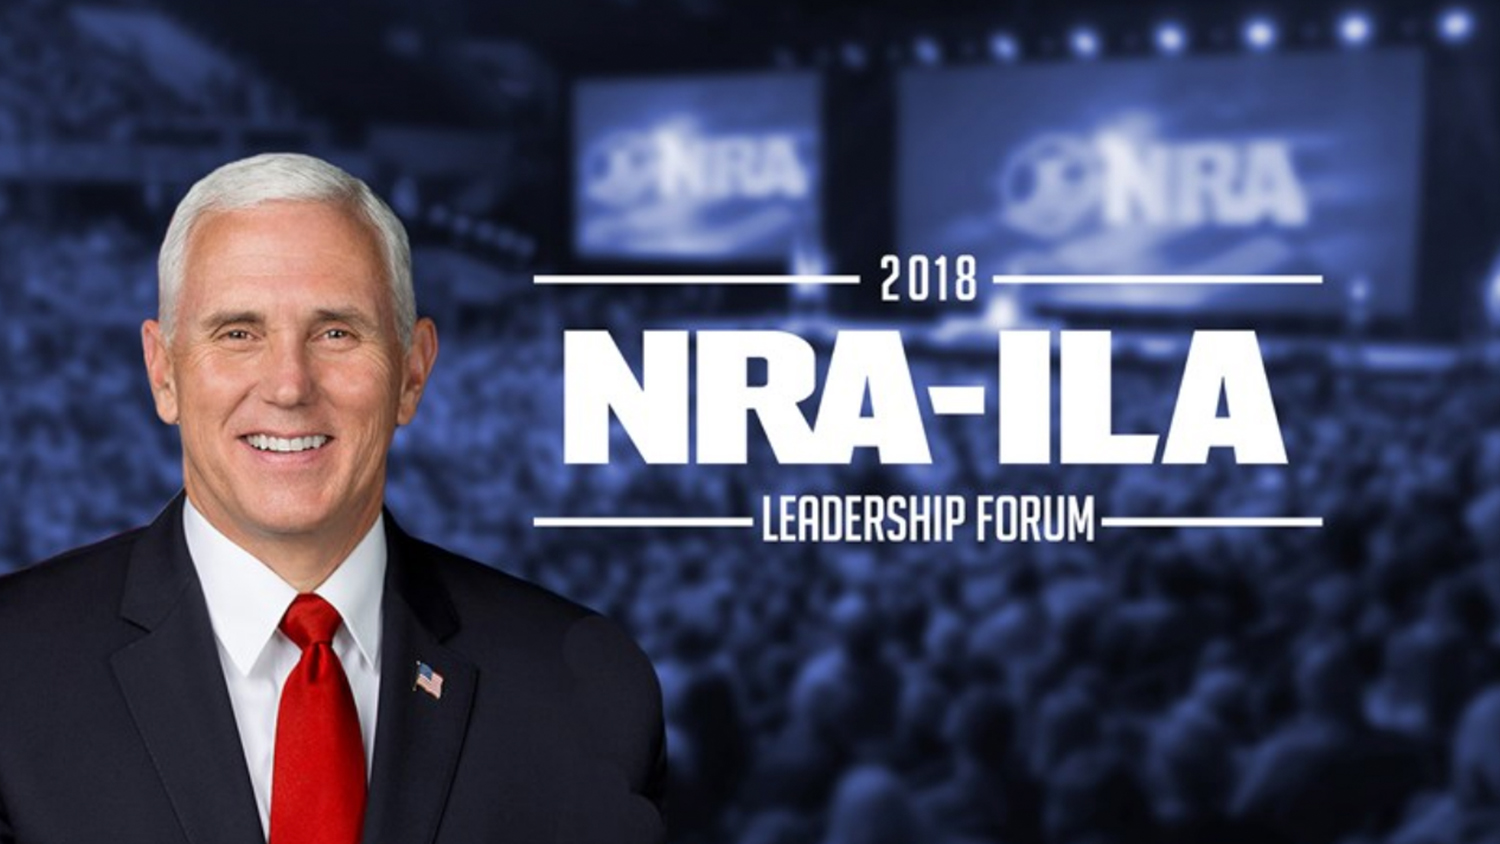 Get Your NRA-ILA Leadership Forum Tickets